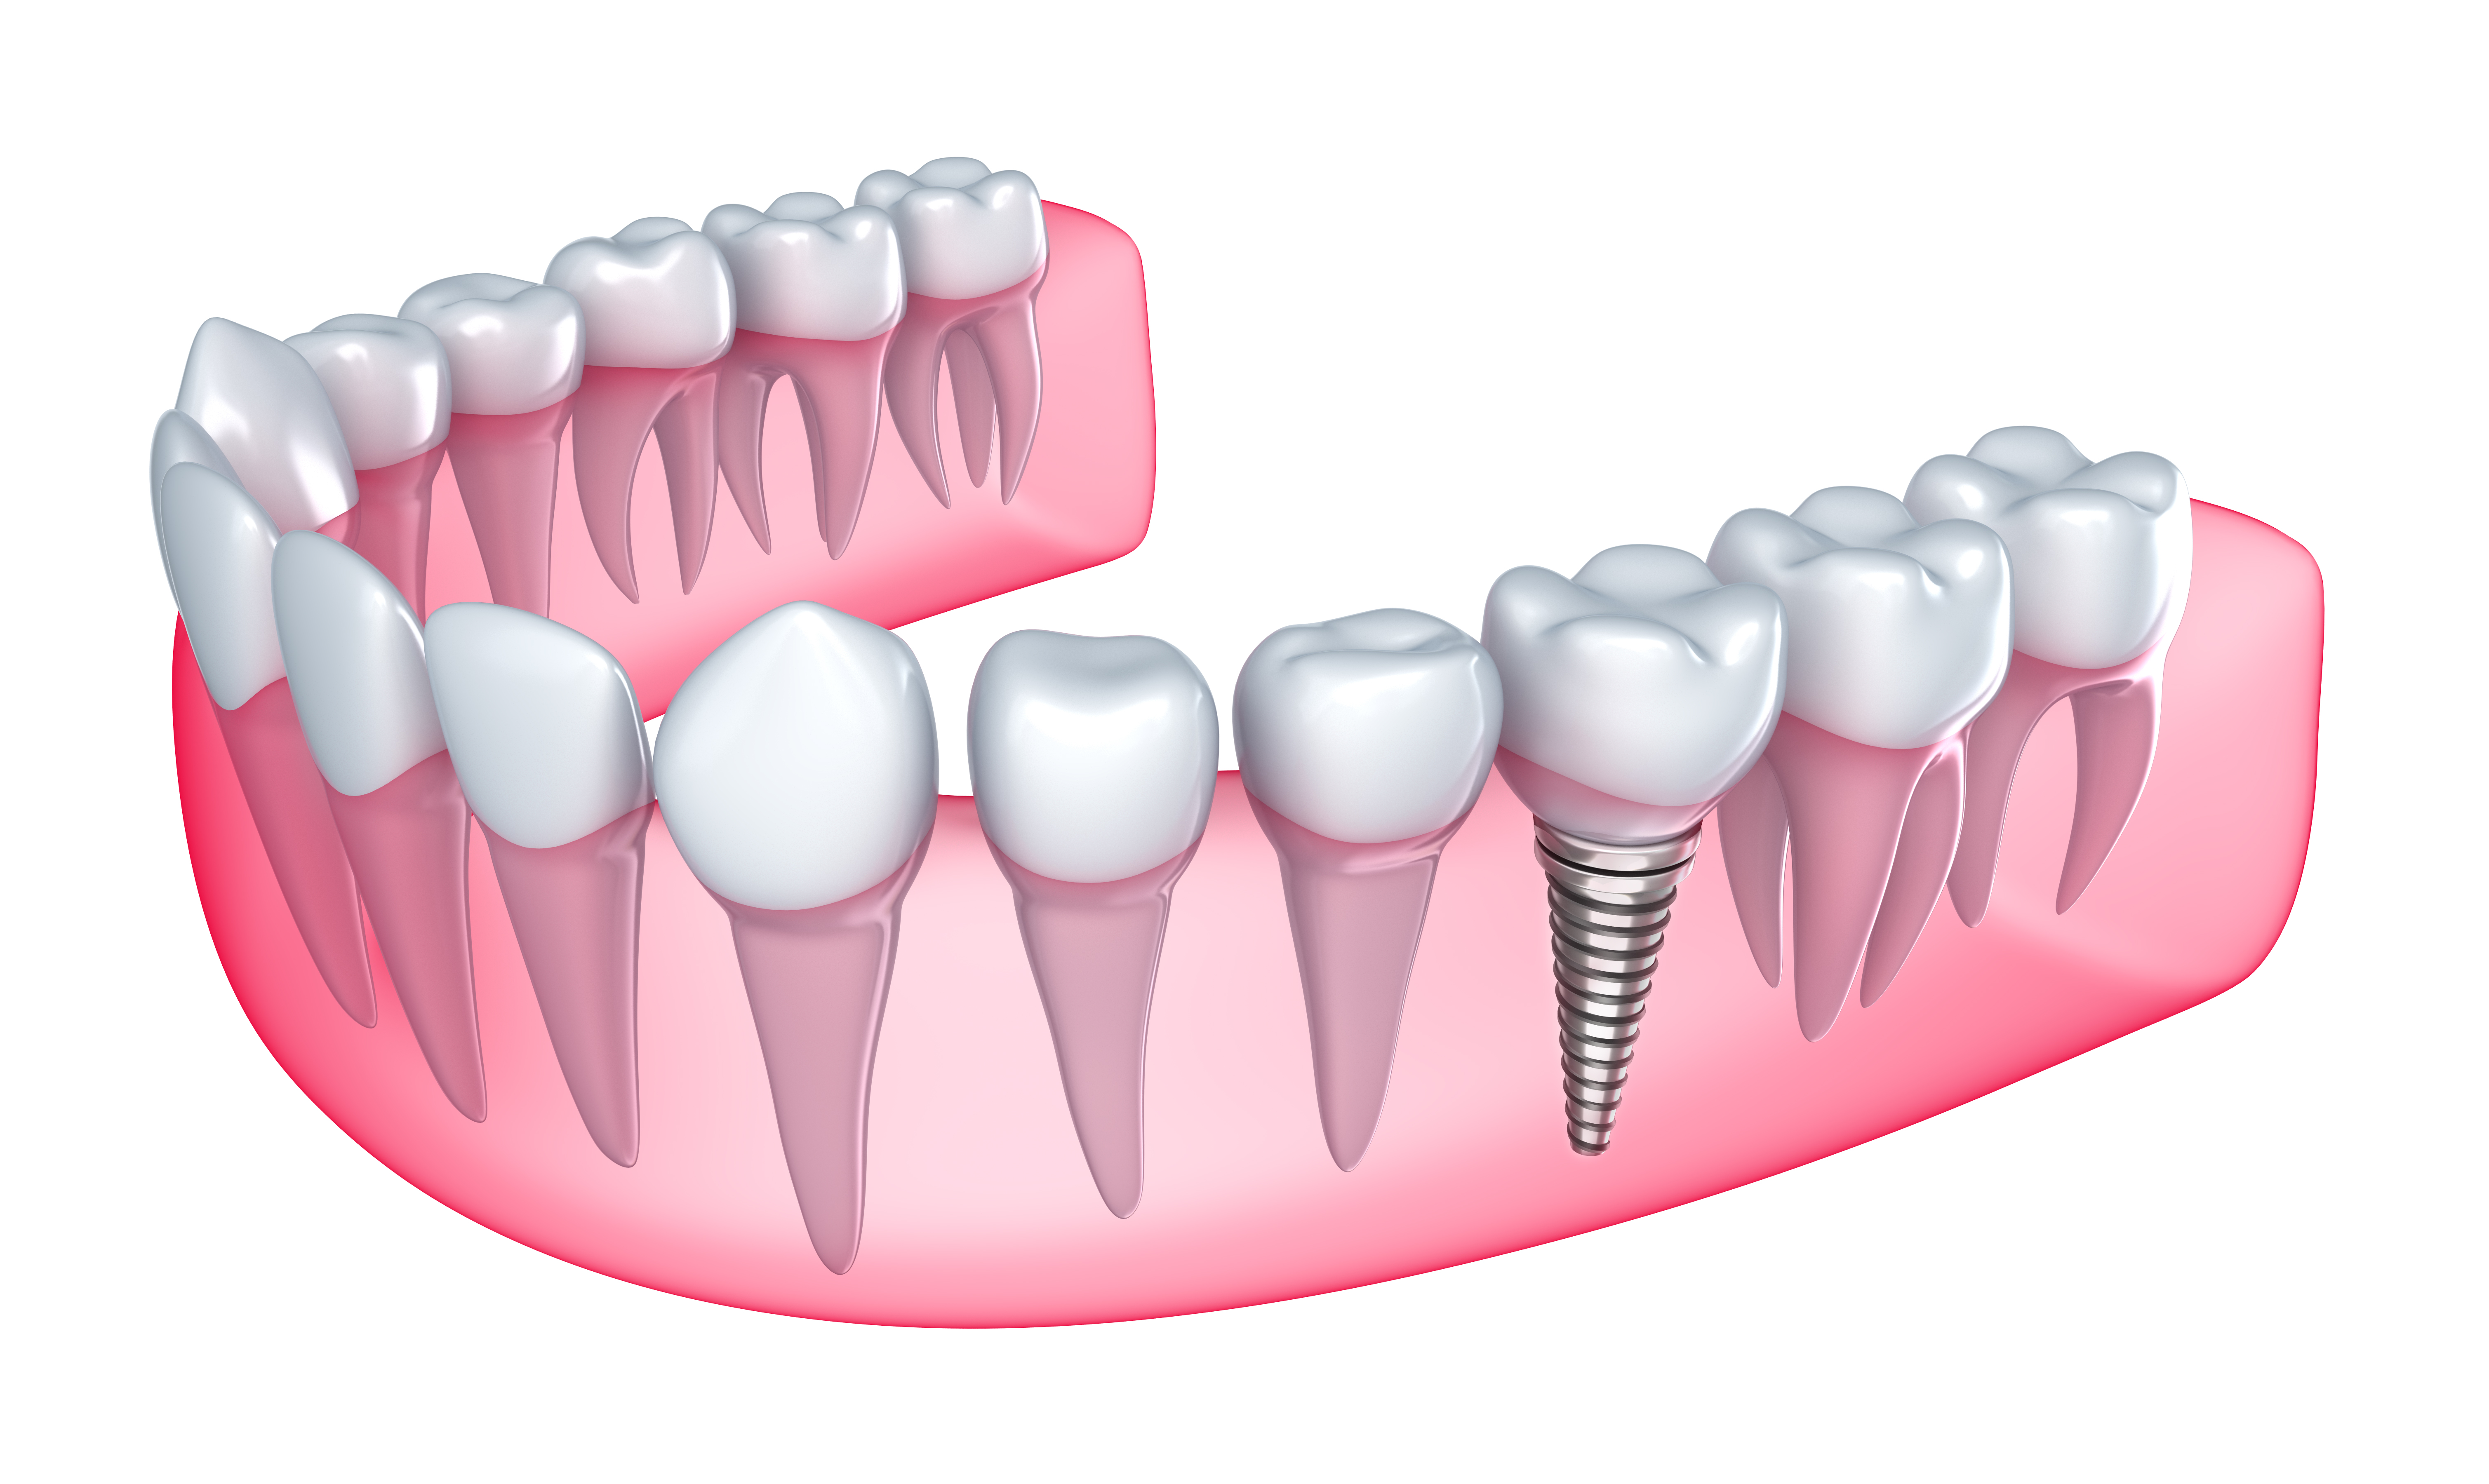 Where can I find dental implants in Orlando?